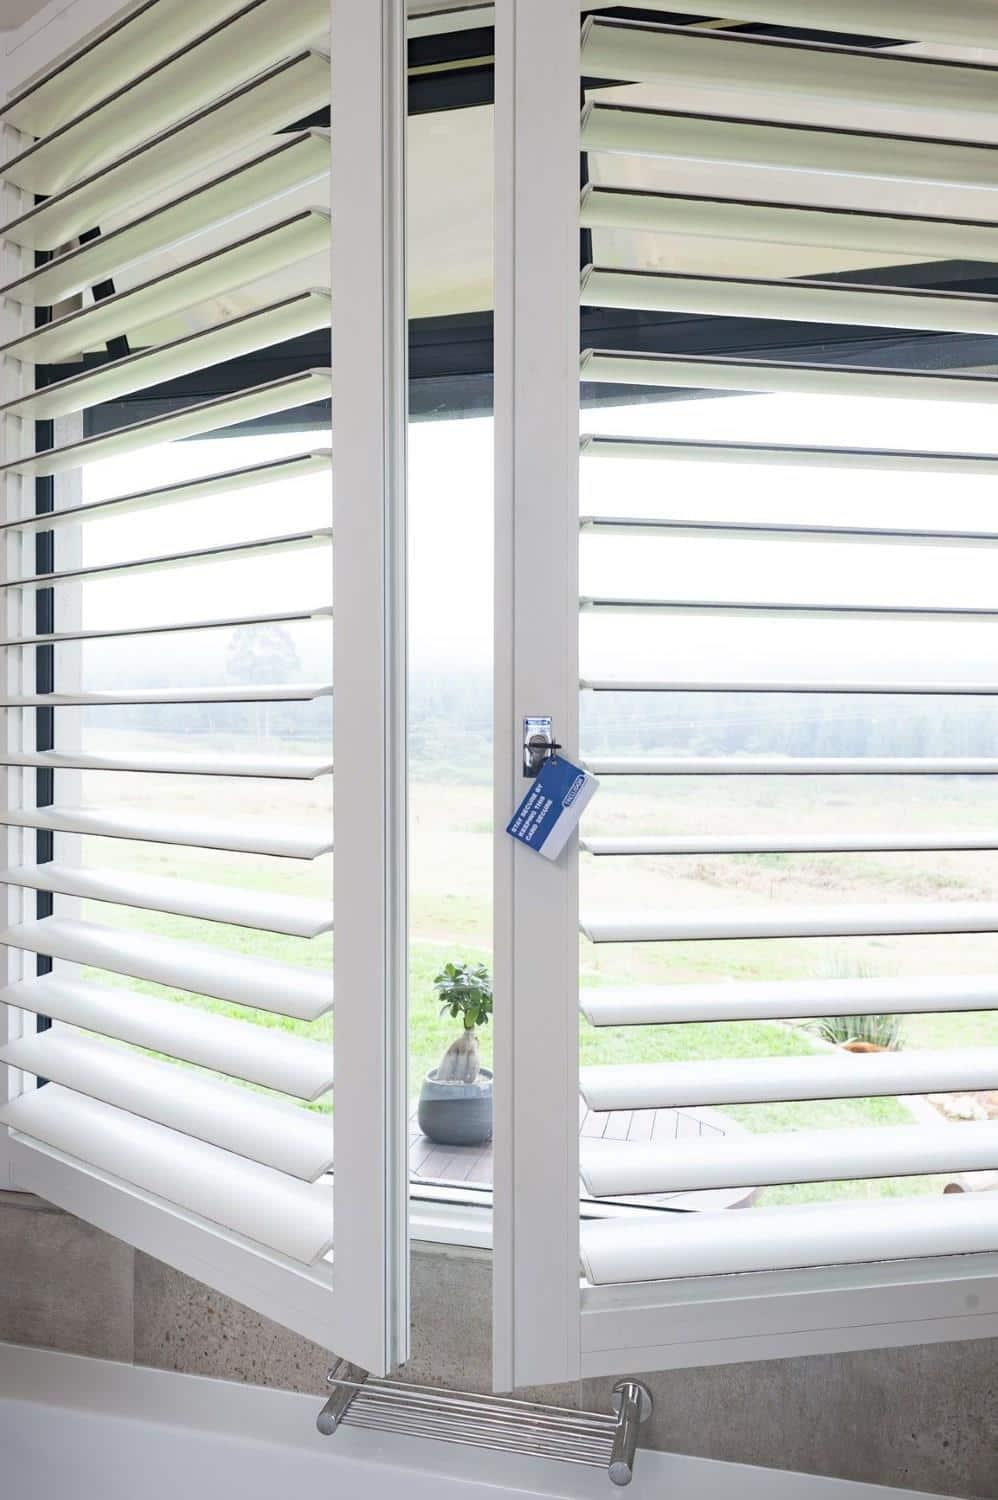 Trellidor Security Shutter aluminium louvre-style shutter with purpose-designed strengthening features. & NEW SHUTTERS BRIDGE GAP BETWEEN ATTRACTIVE DESIGN AND FUNCTIONAL ...